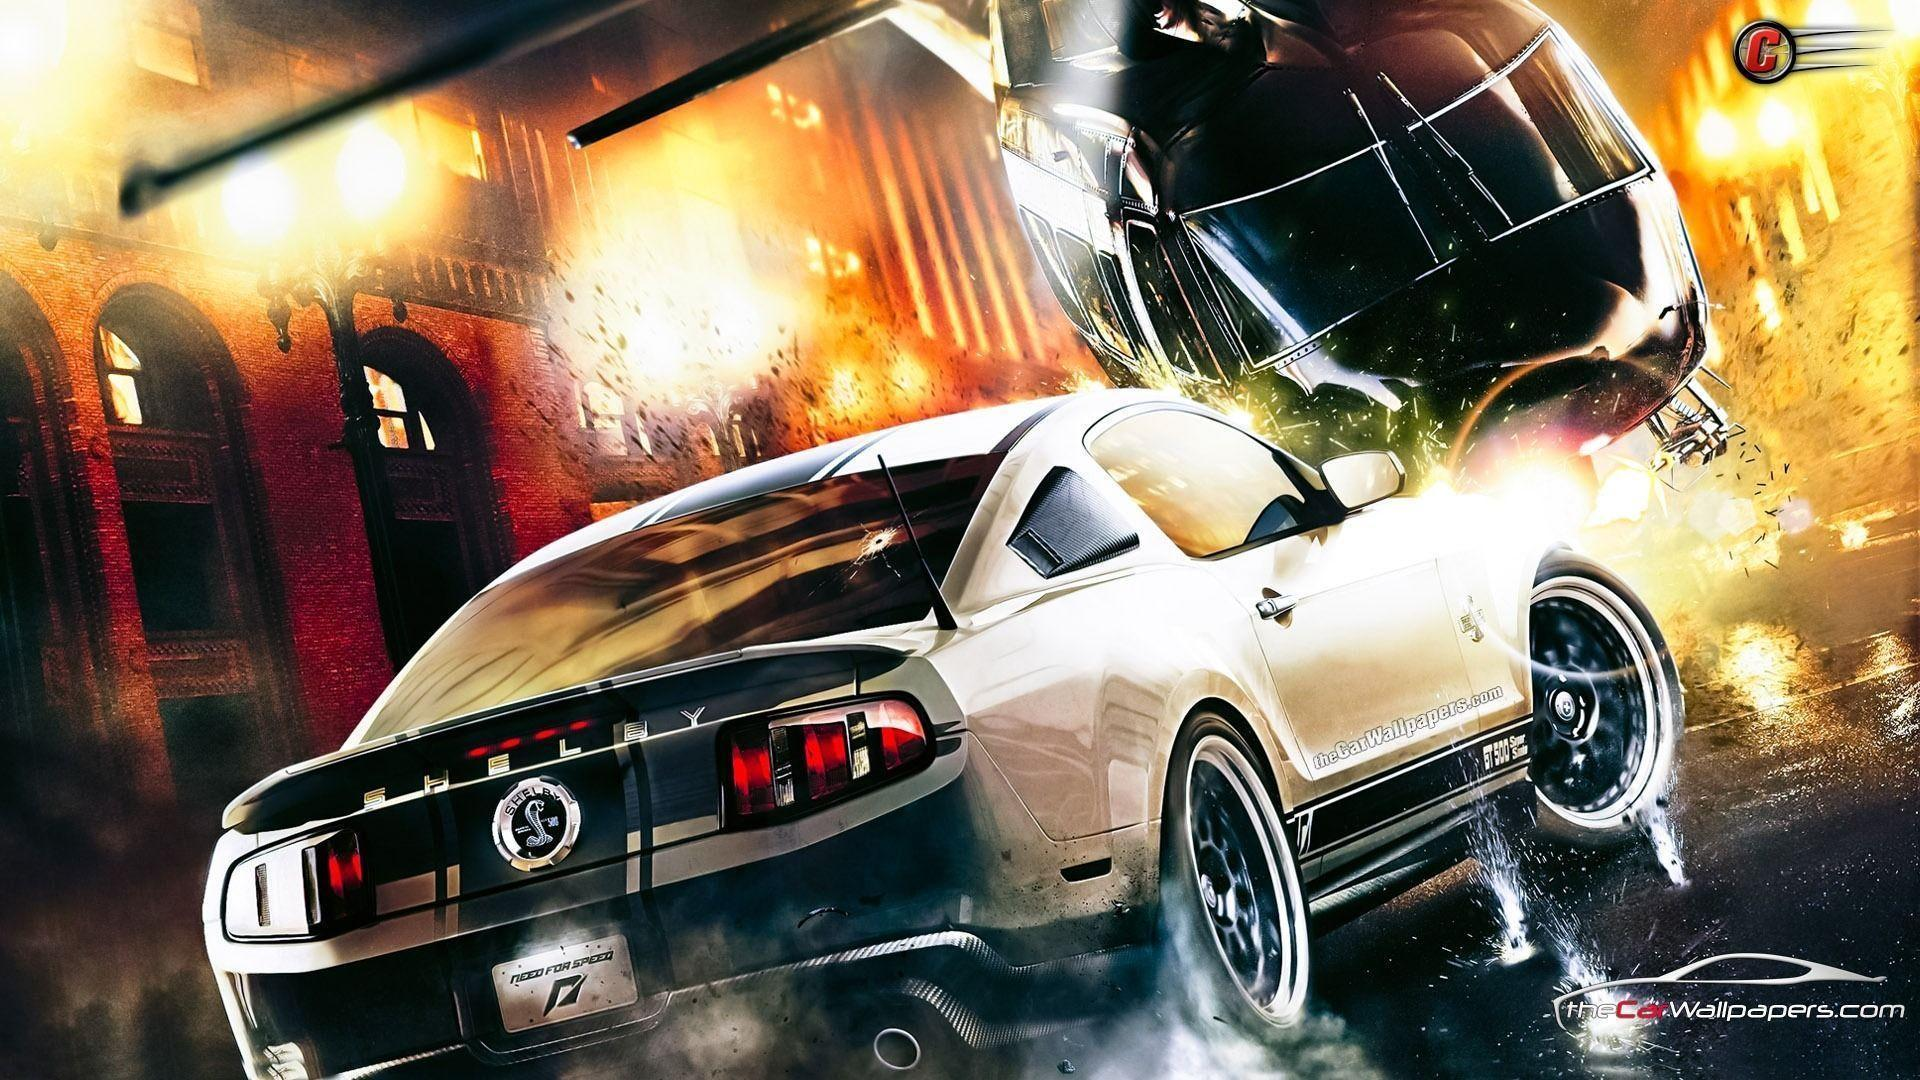 Wallpapers For > Need For Speed The Run Wallpaper 1920x1080